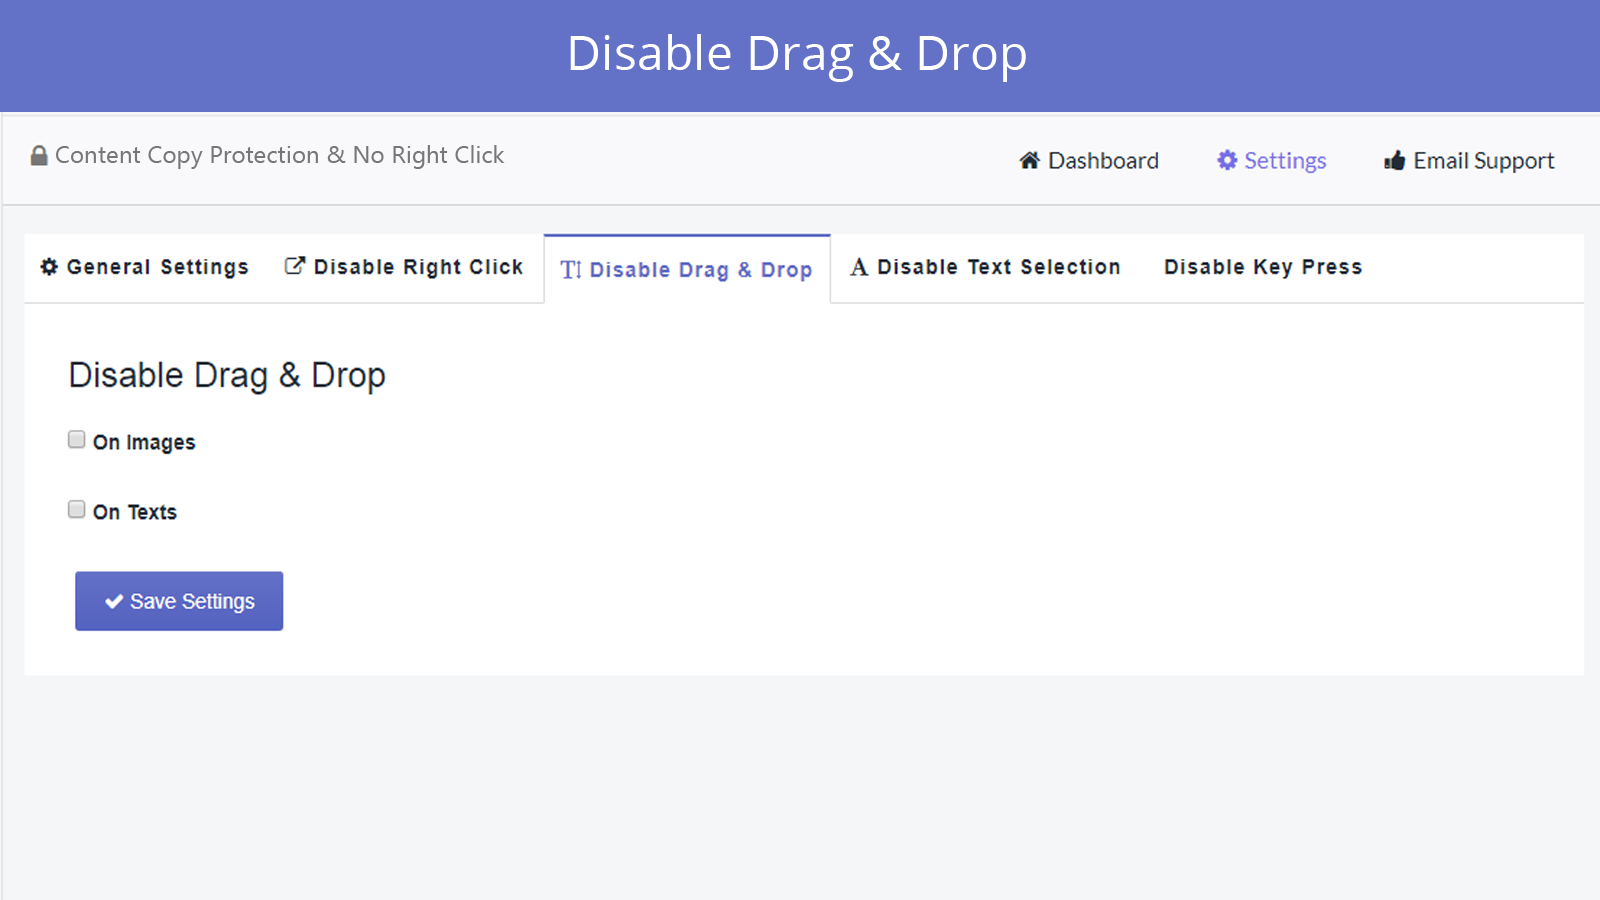 disable drag and drop feature in smart right click disabler app